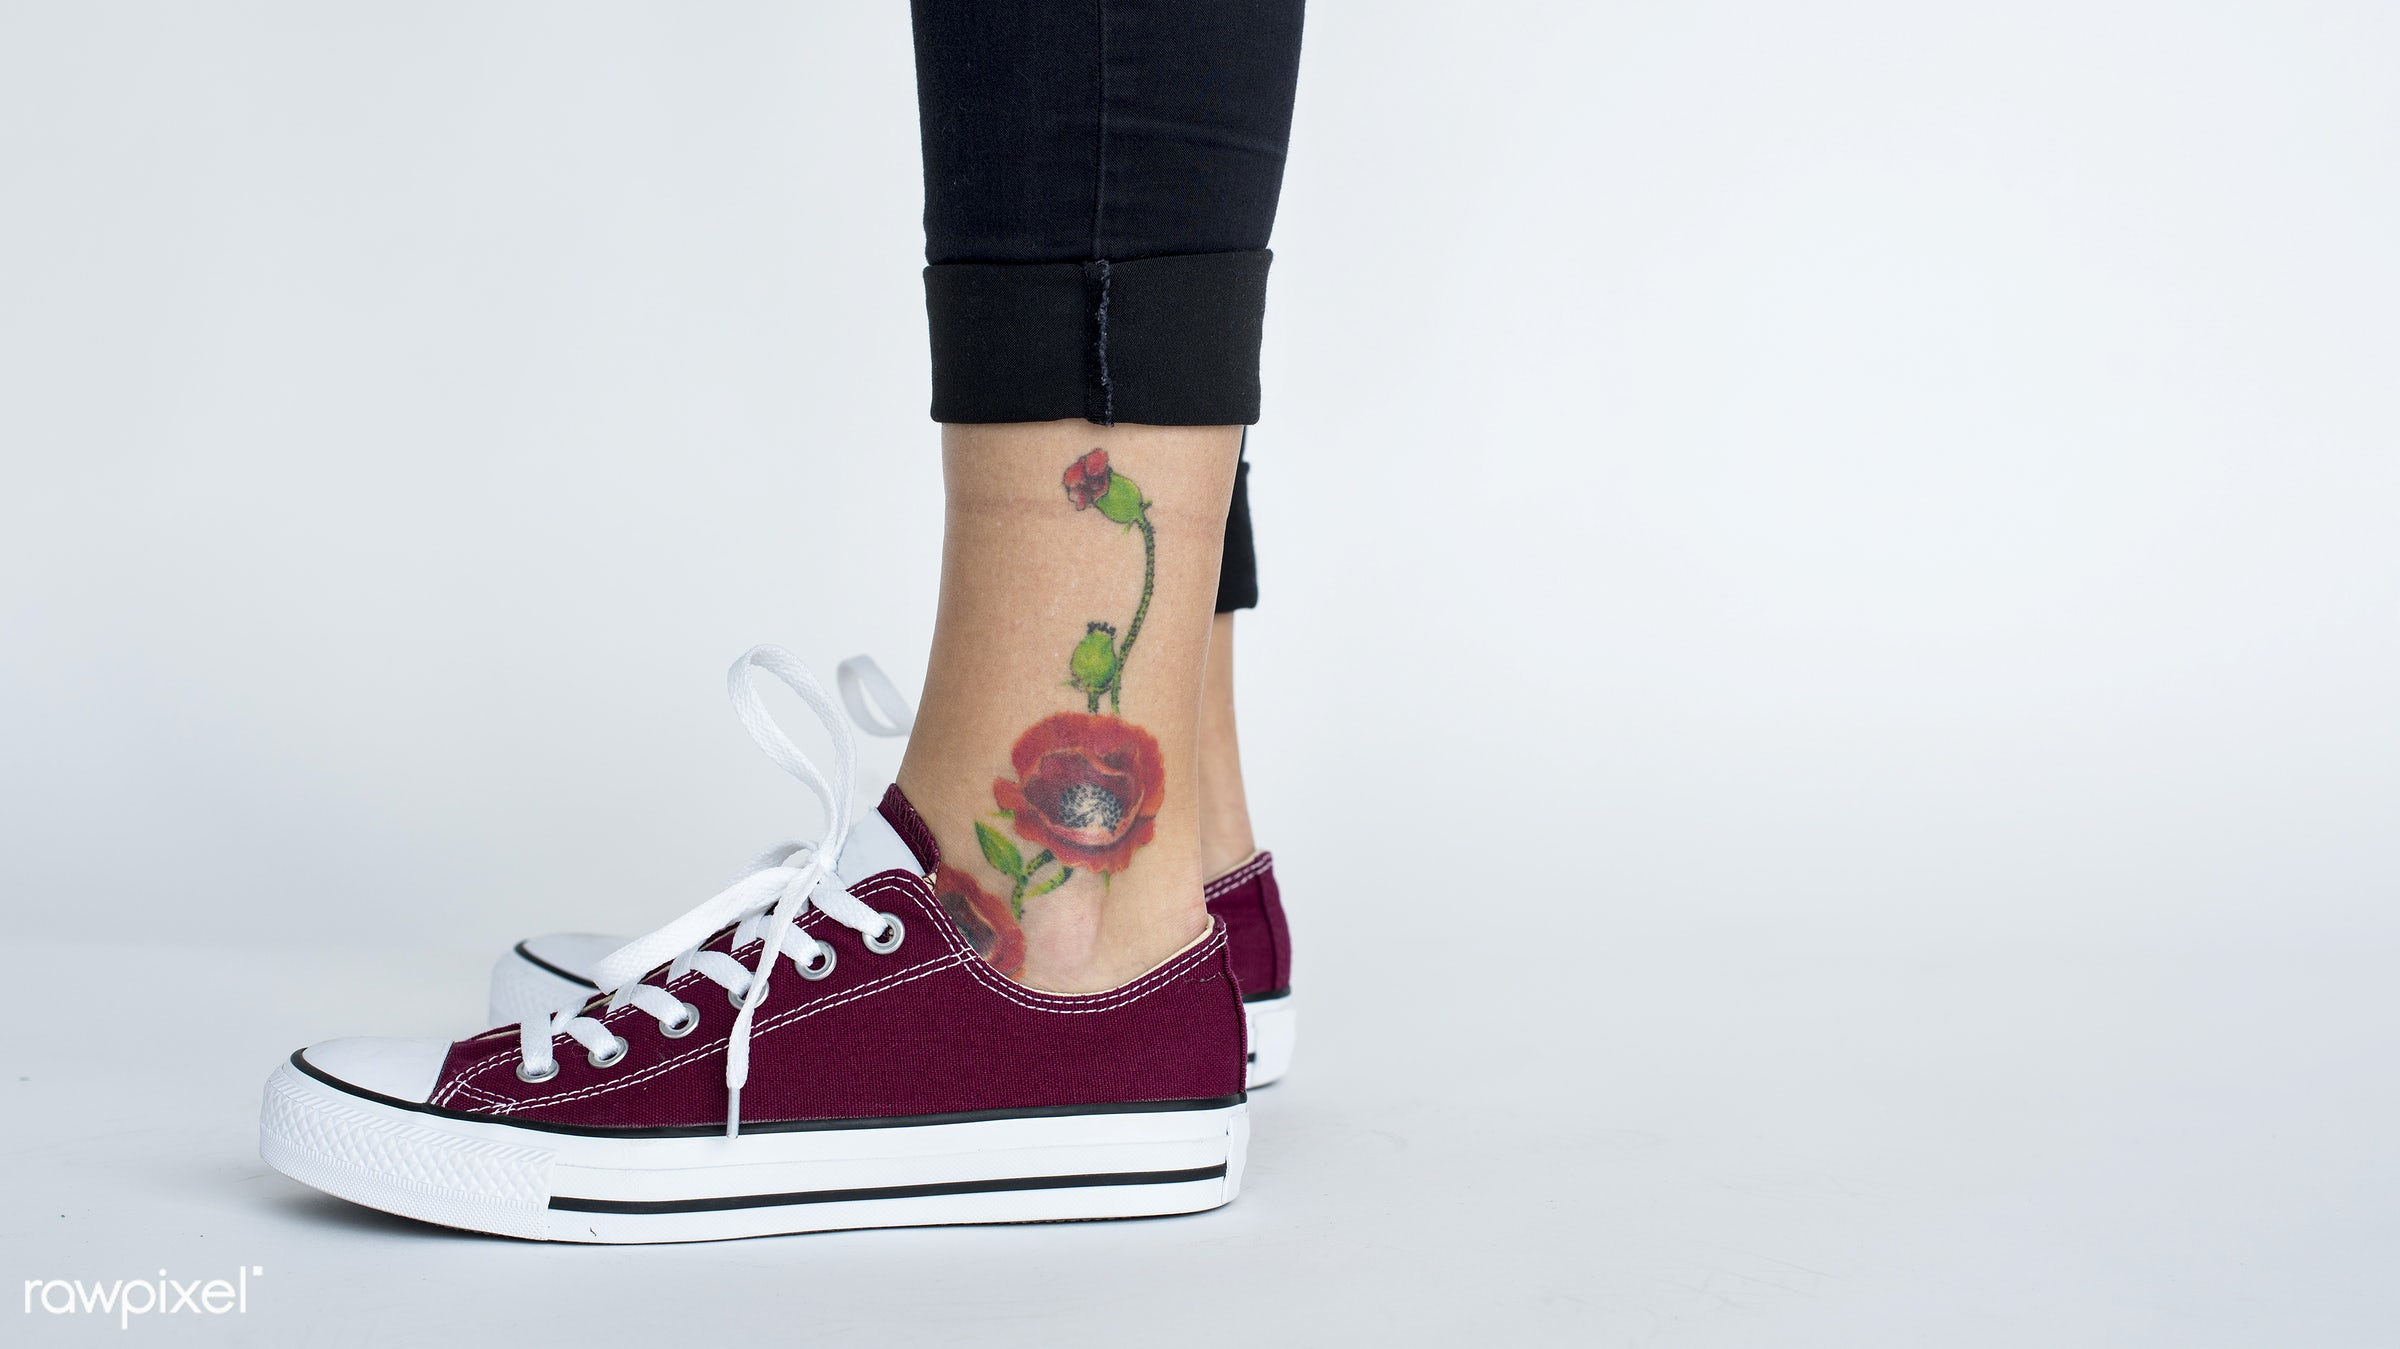 studio, expression, person, isolated on white, ground, people, caucasian, woman, casual, tattoo, flower, shoes, isolated,...